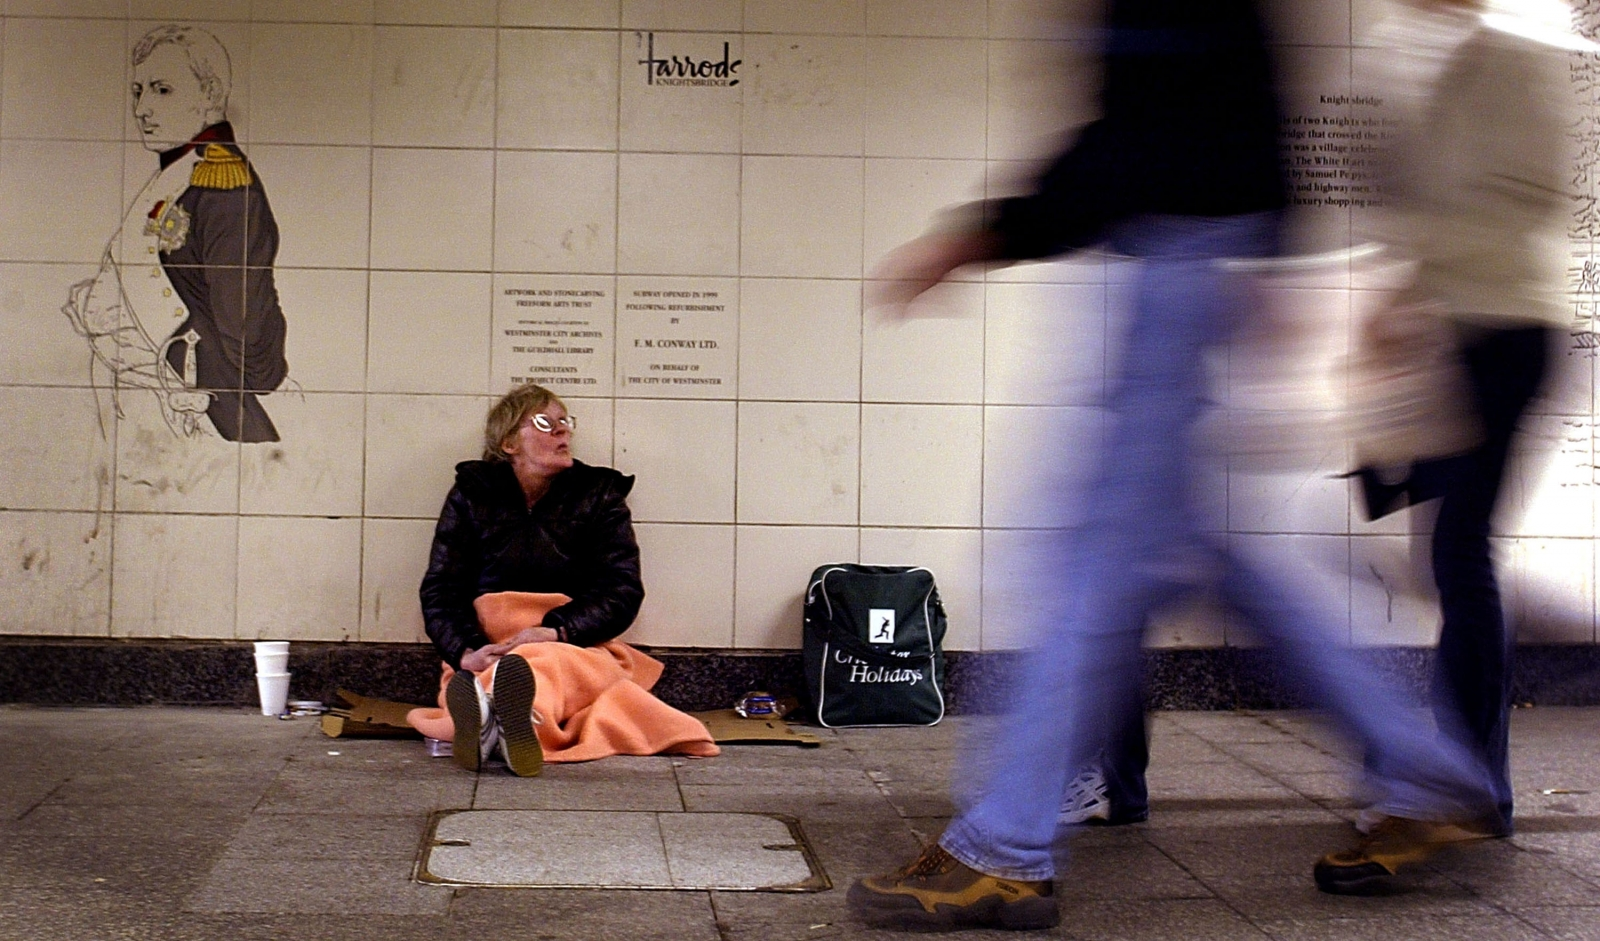 A homeless woman begs for change in a subway station